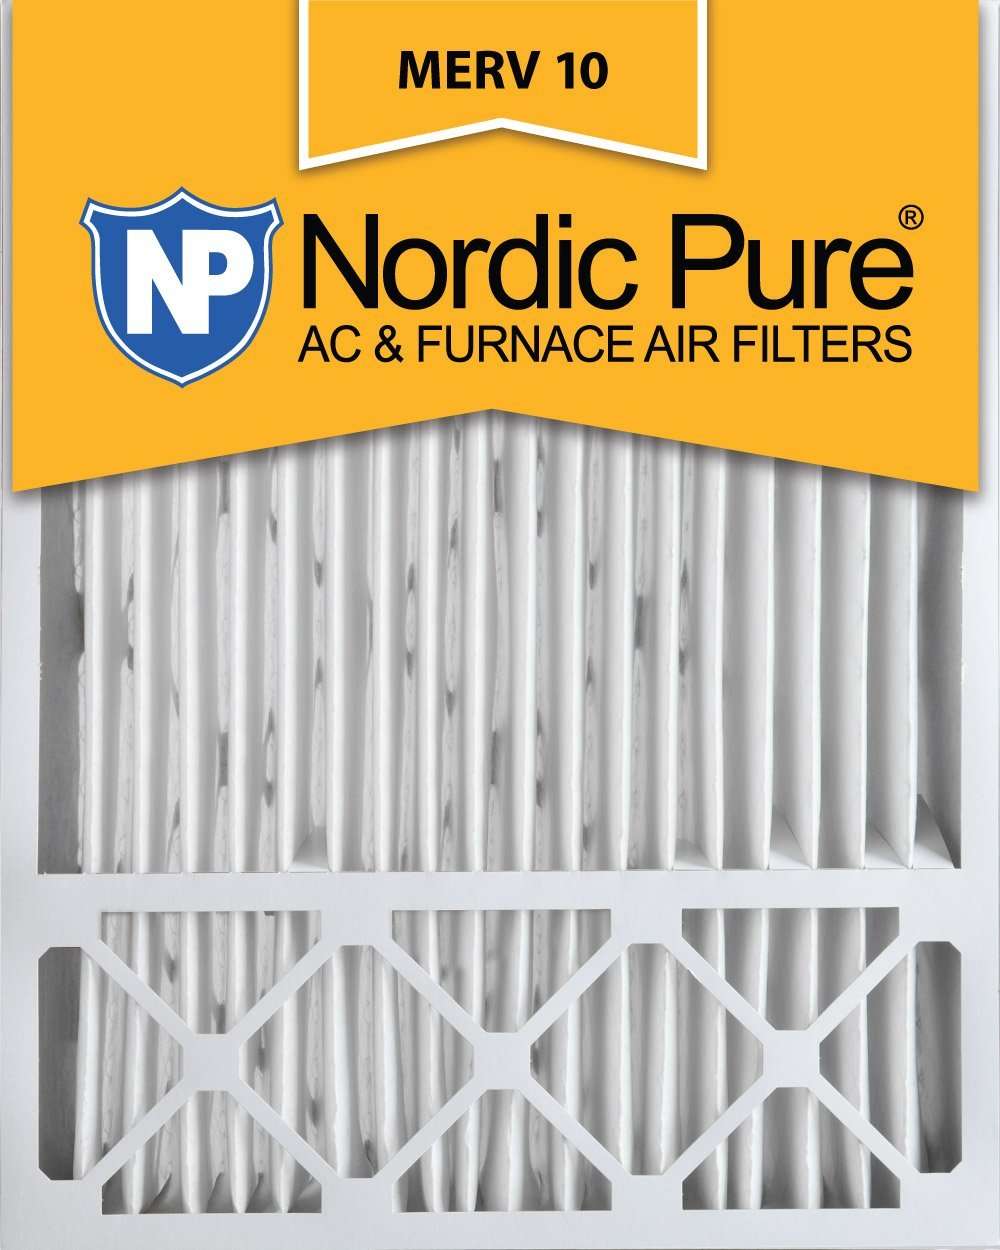 Nordic Pure 20x25x5 (4-3/8 Actual Depth) Lennox X6673_X6675 Replacement MERV 10 Pleated AC Furnace Air Filter, Box of 4